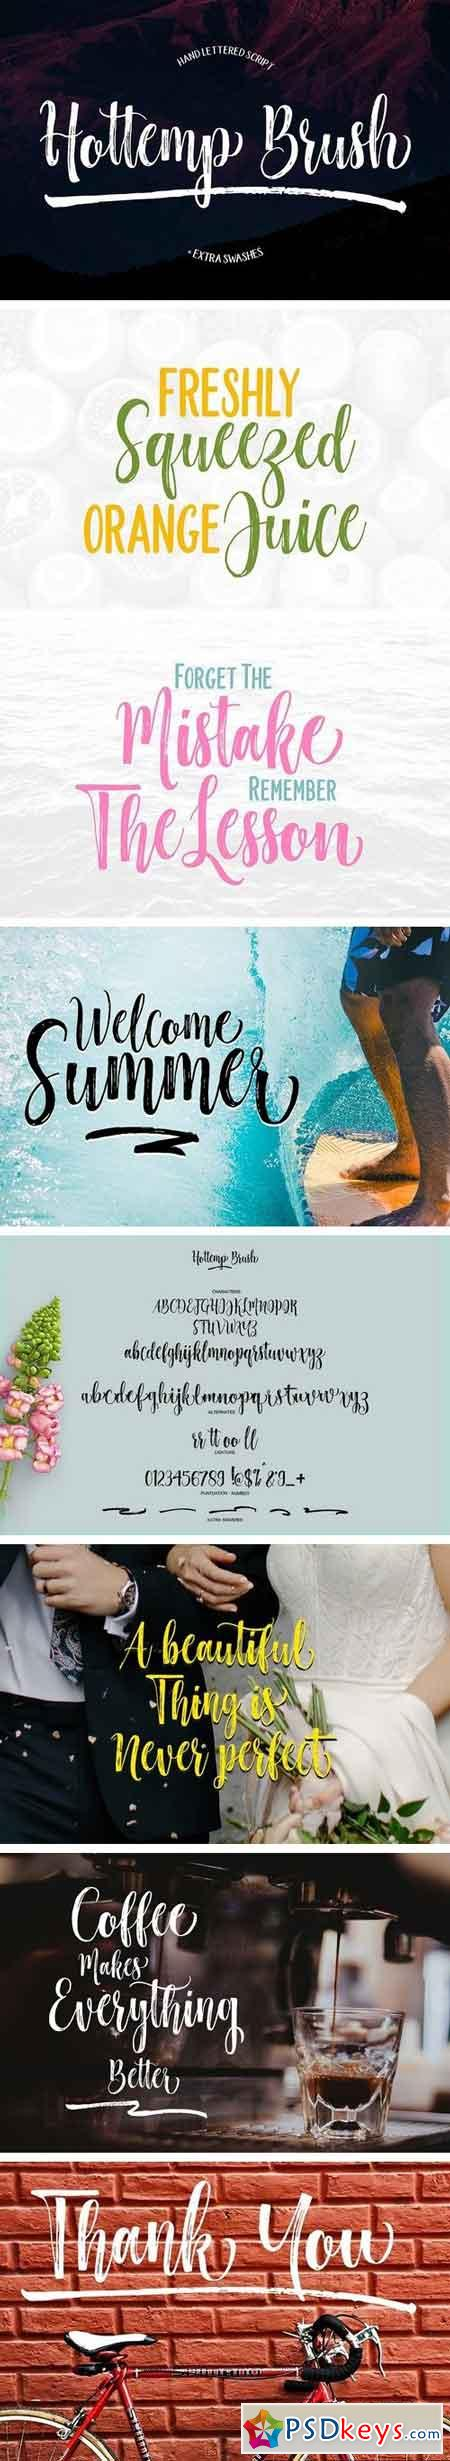 Hottemp Brush - Font Duo 1949042